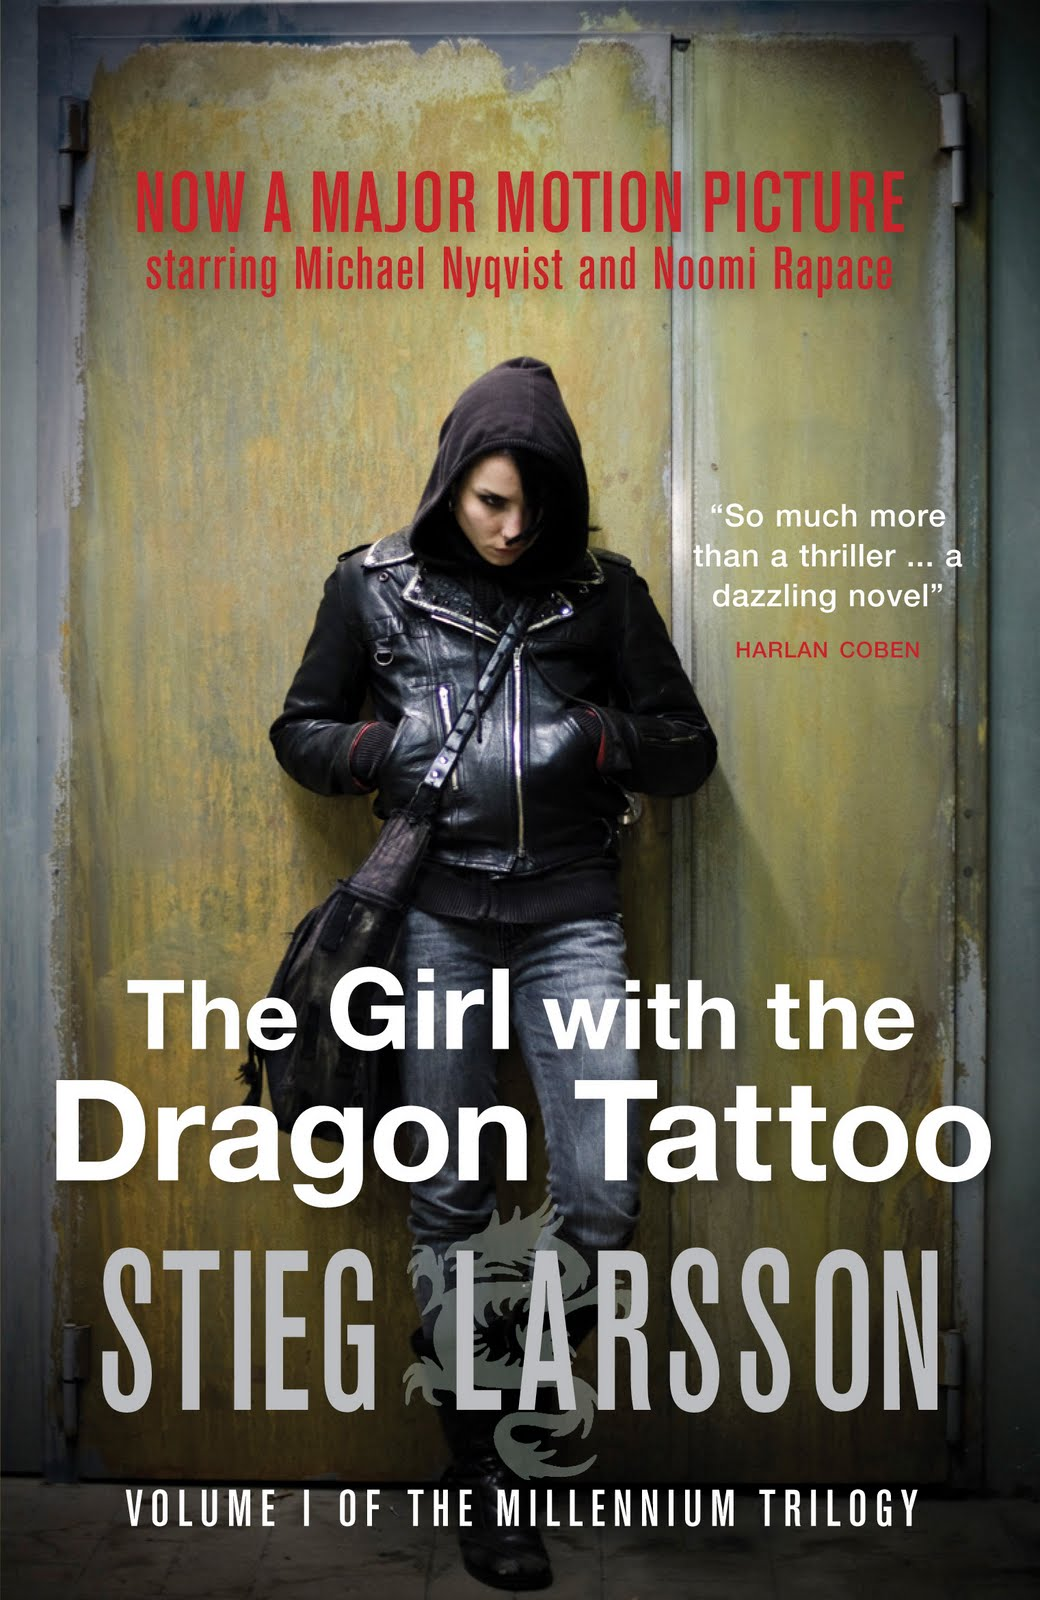 http://4.bp.blogspot.com/_X9UfDx9CiZc/TUUgY1Un2hI/AAAAAAAAAb0/F86FaAzhPjY/s1600/The+Girl+with+the+Dragon+Tattoo.jpg